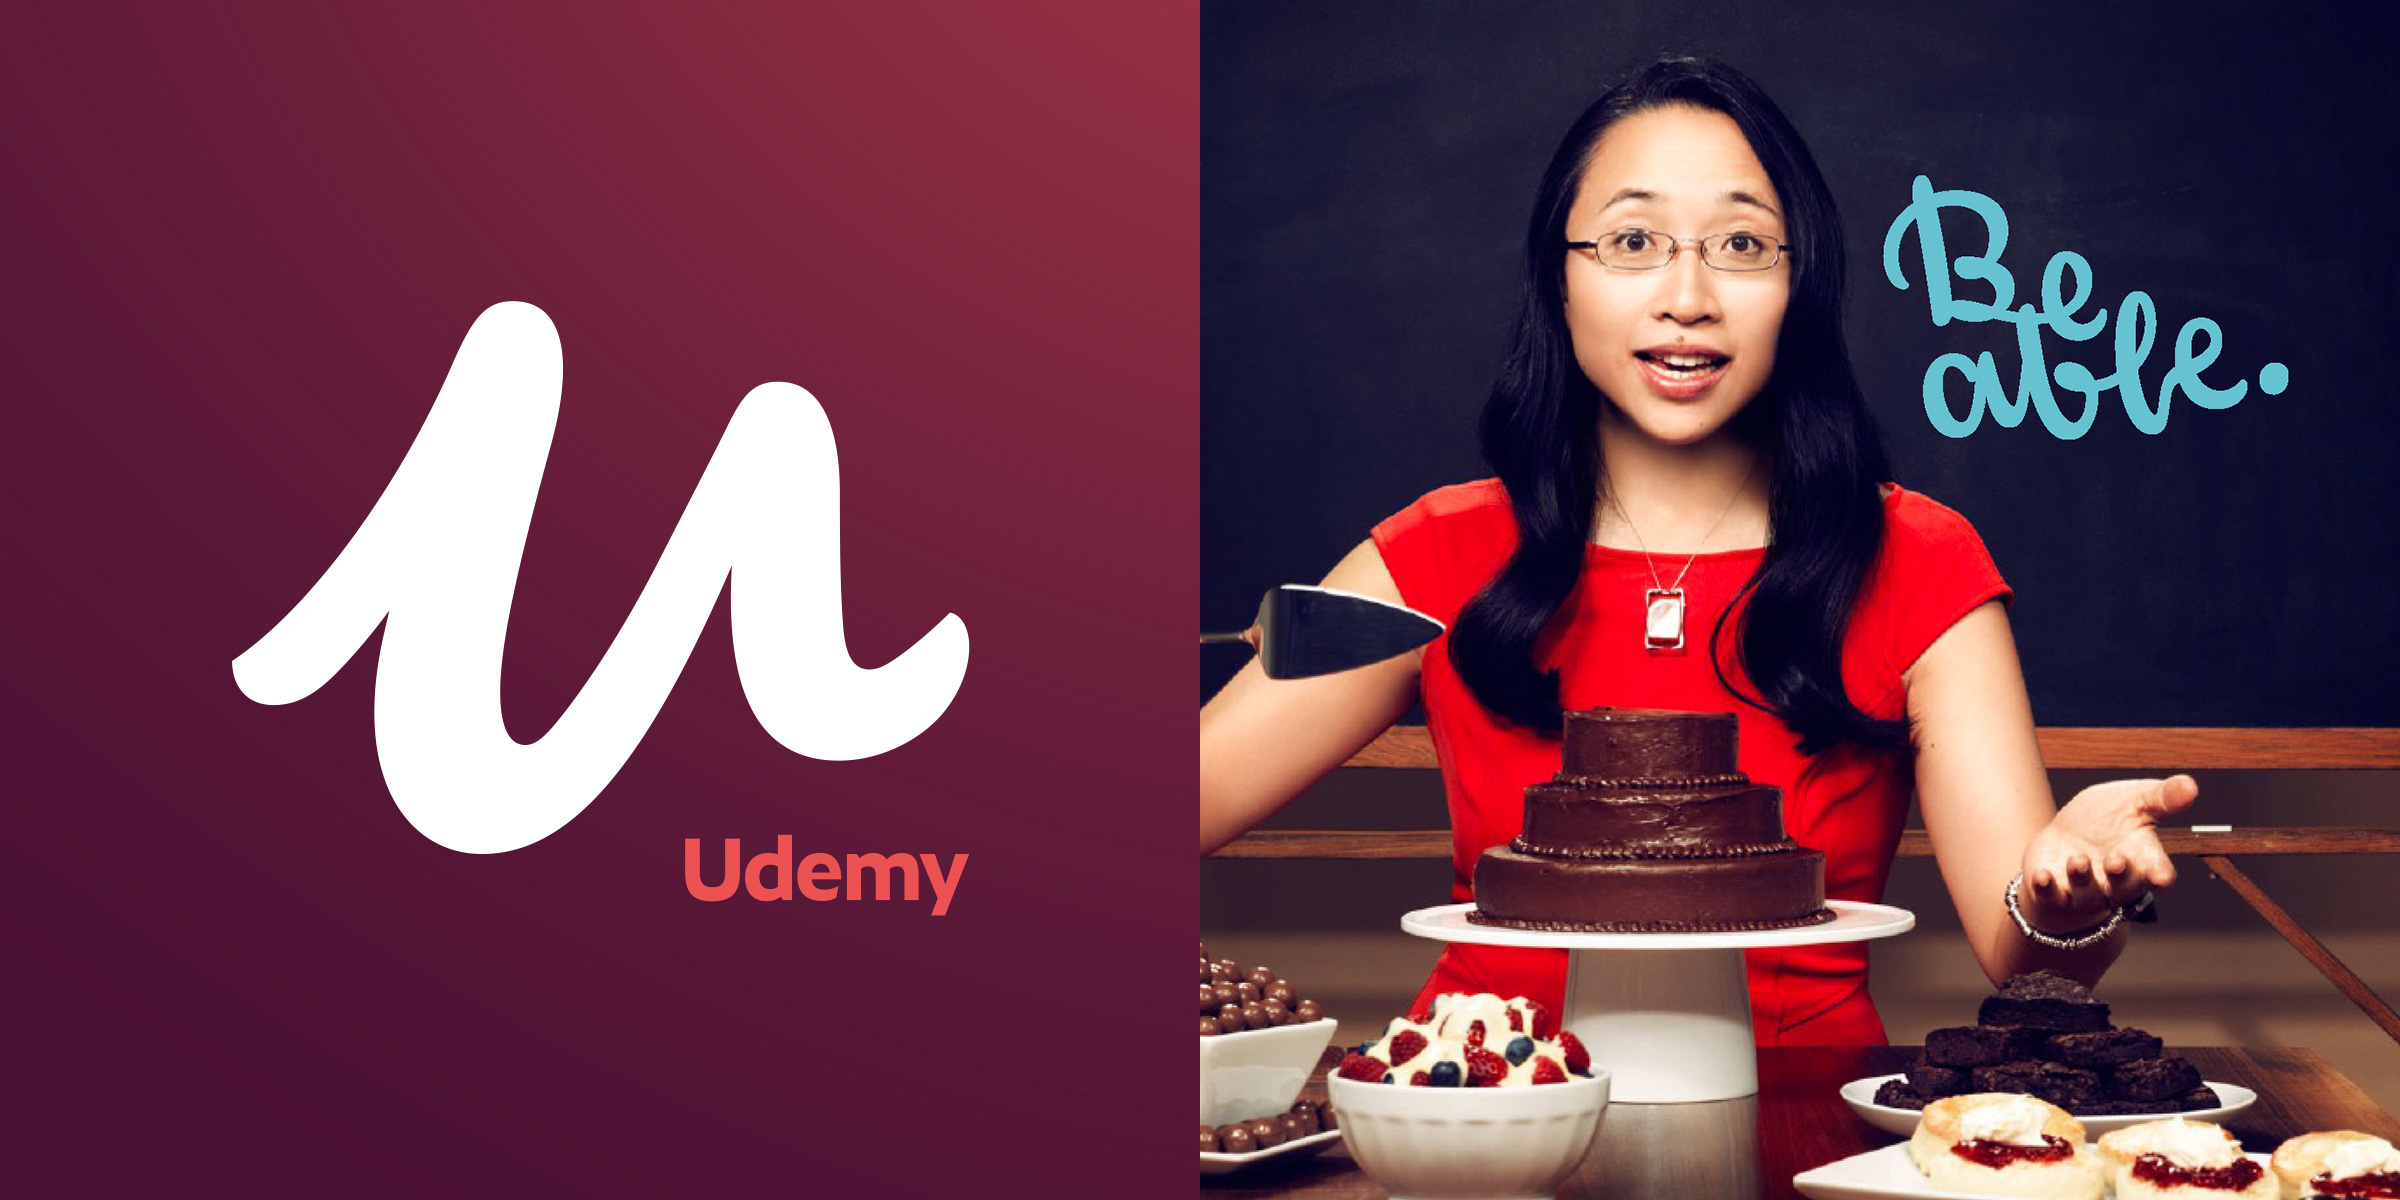 "Grid image with two images. On the left is the Udemy logo, a burgundy background with a big letter ""U"" in white. The image on the right is a female presenting person in their twenties. She has several deserts in around her as she is sitting at a table with a slicing knife. She appears to be in mid sentence as if she is demonstrating something on the topic of baking."